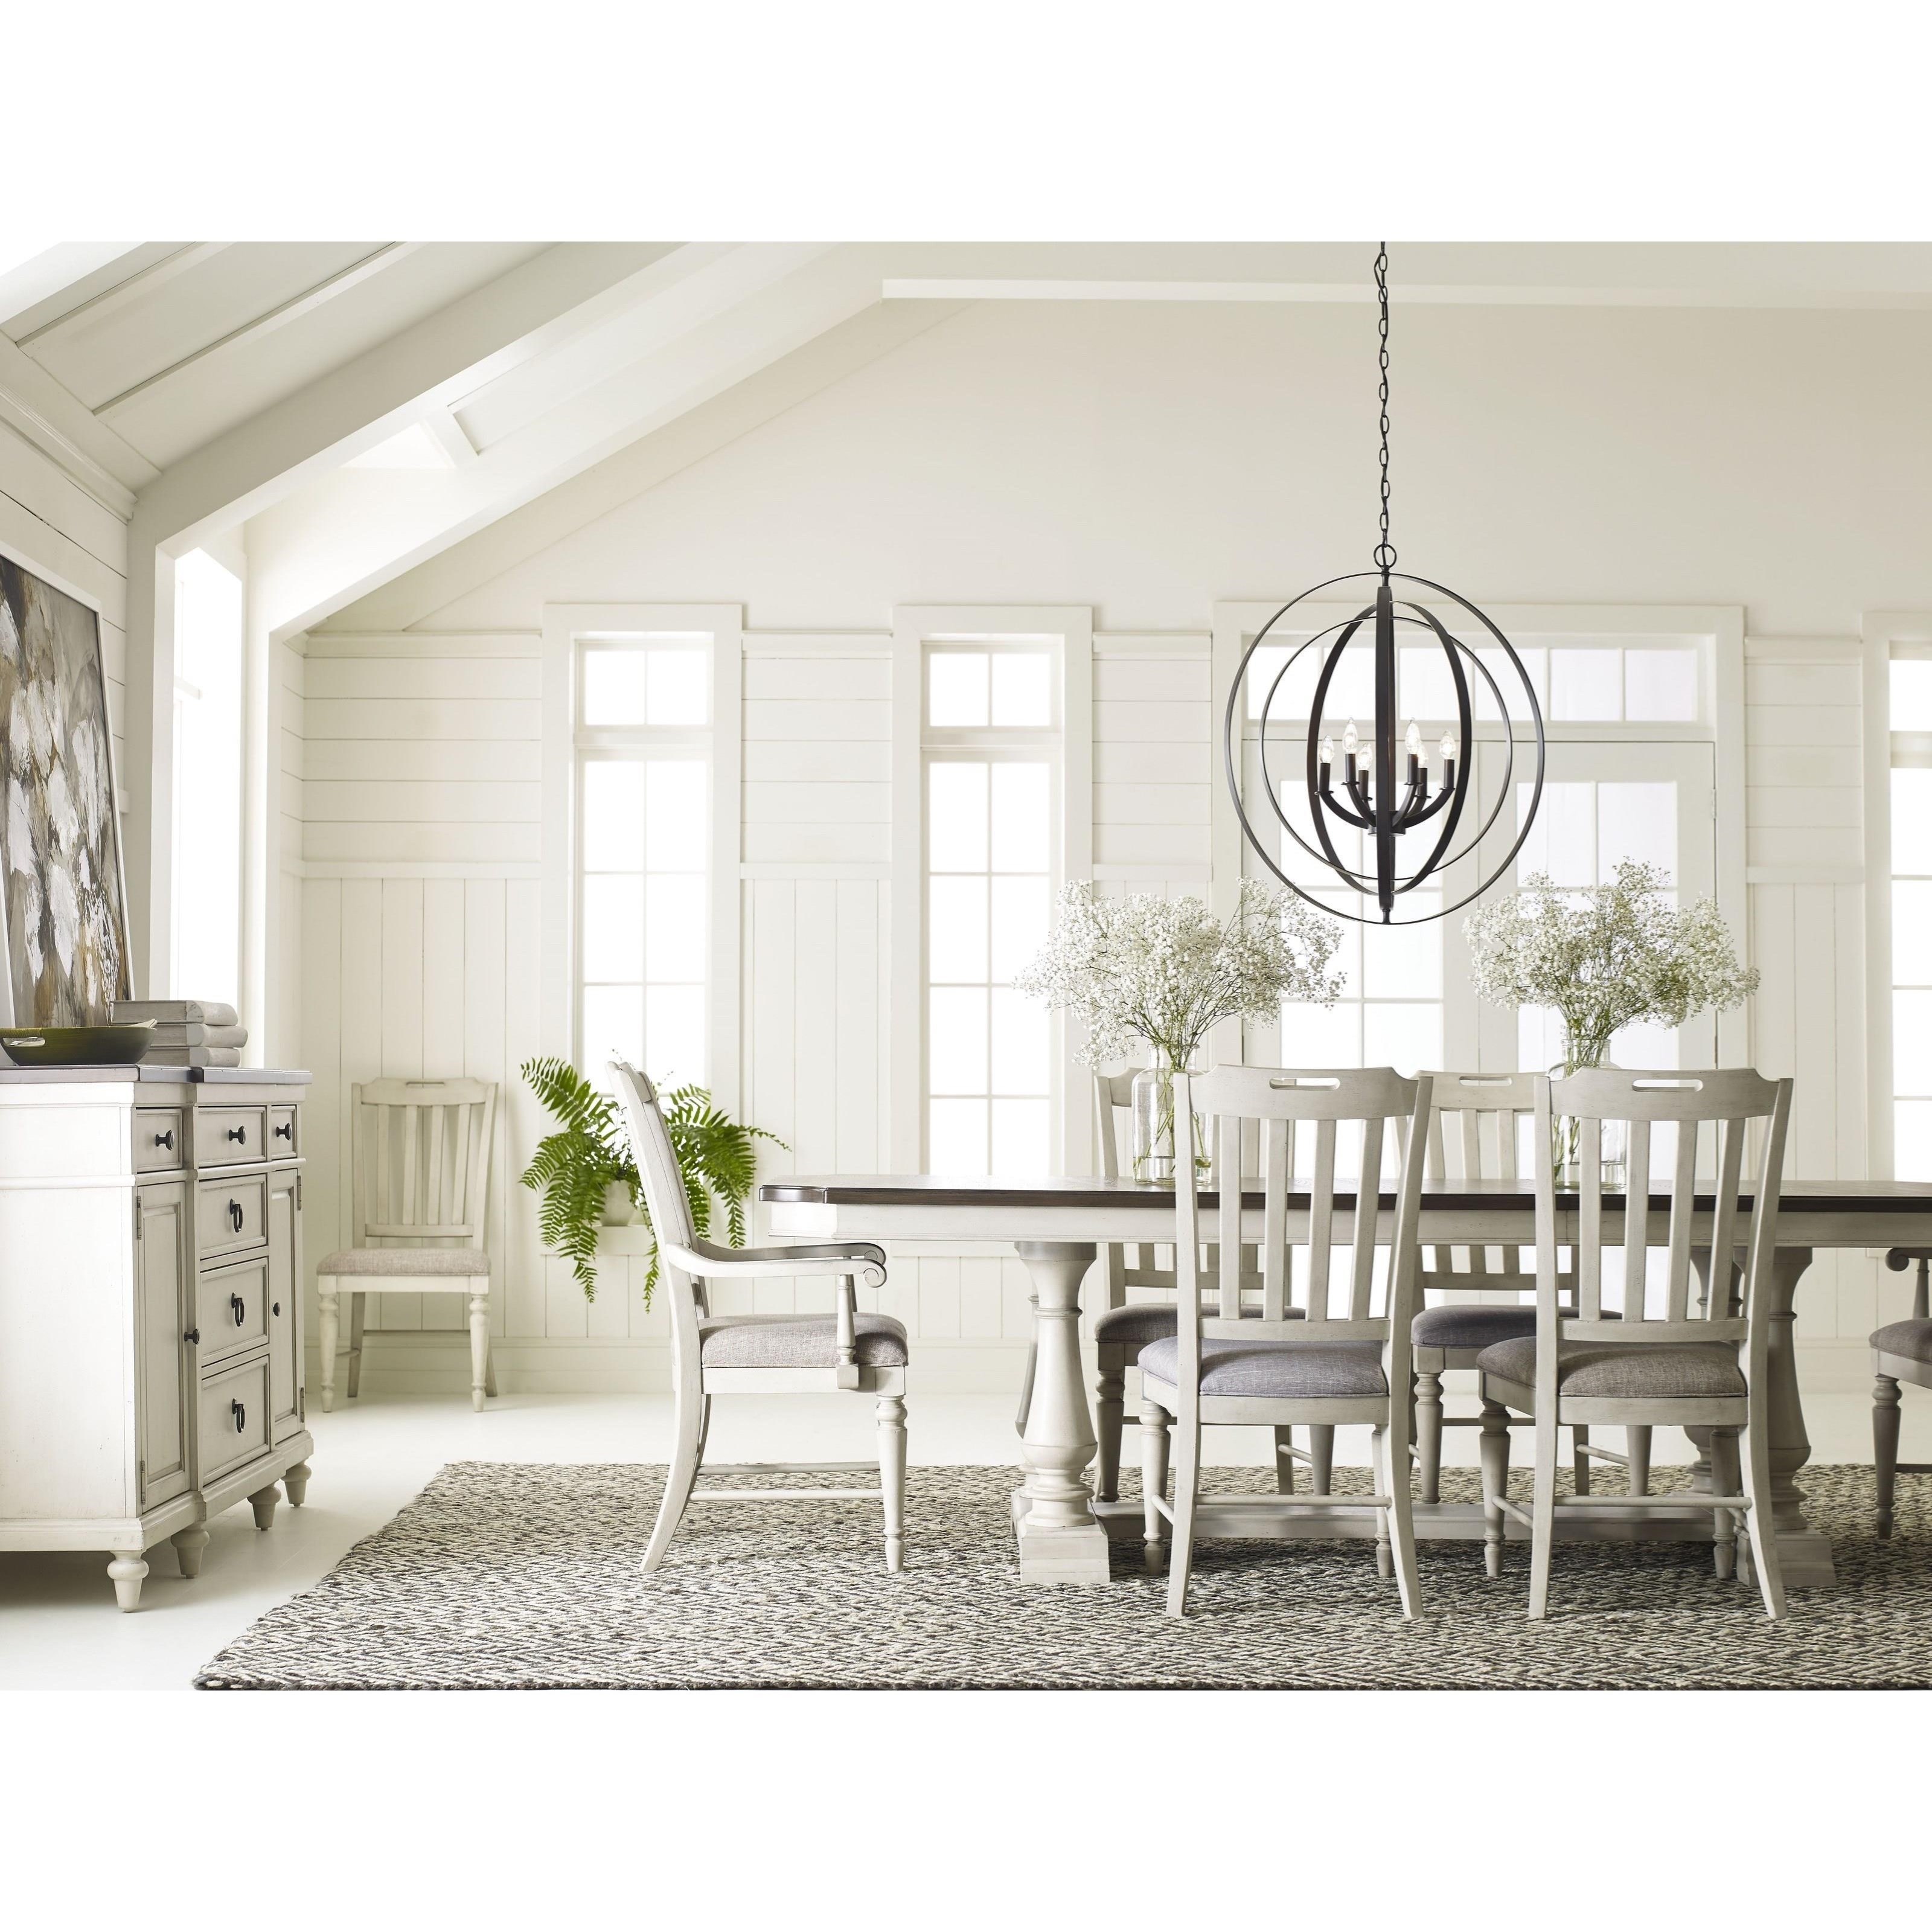 Legacy classic brookhaven 6400 622k trestle table with 2 for Legacy classic dining room furniture